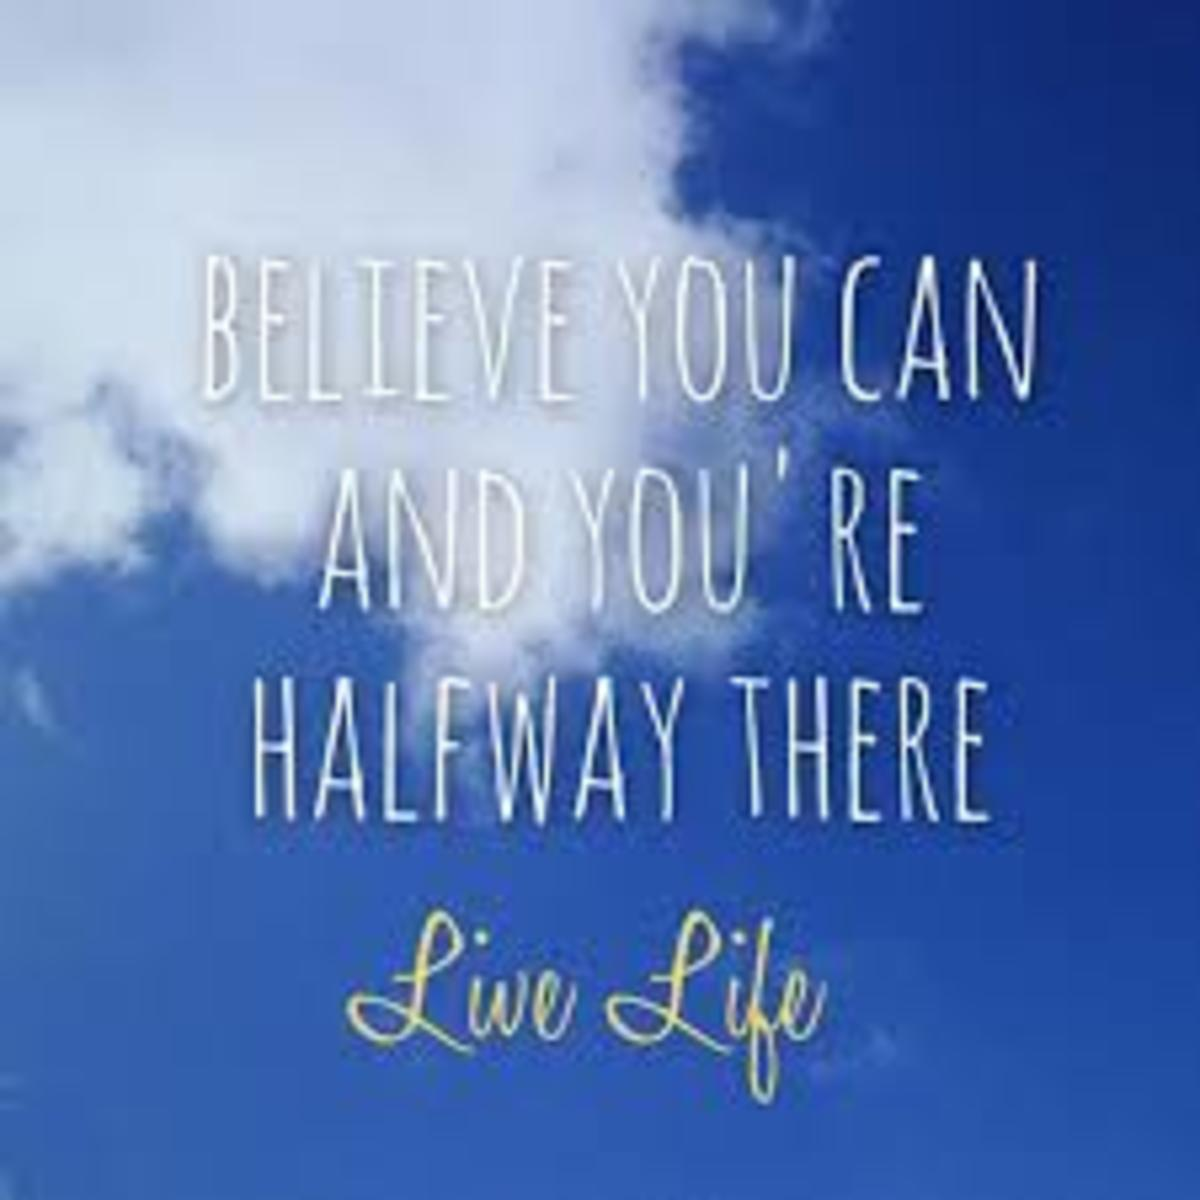 The first step towards achieving any goal is to believe you can and expect it to happen. Visualization using the power of your imagination prompts the subconscious mind to create positive thoughts to seek ways to reach your goals.